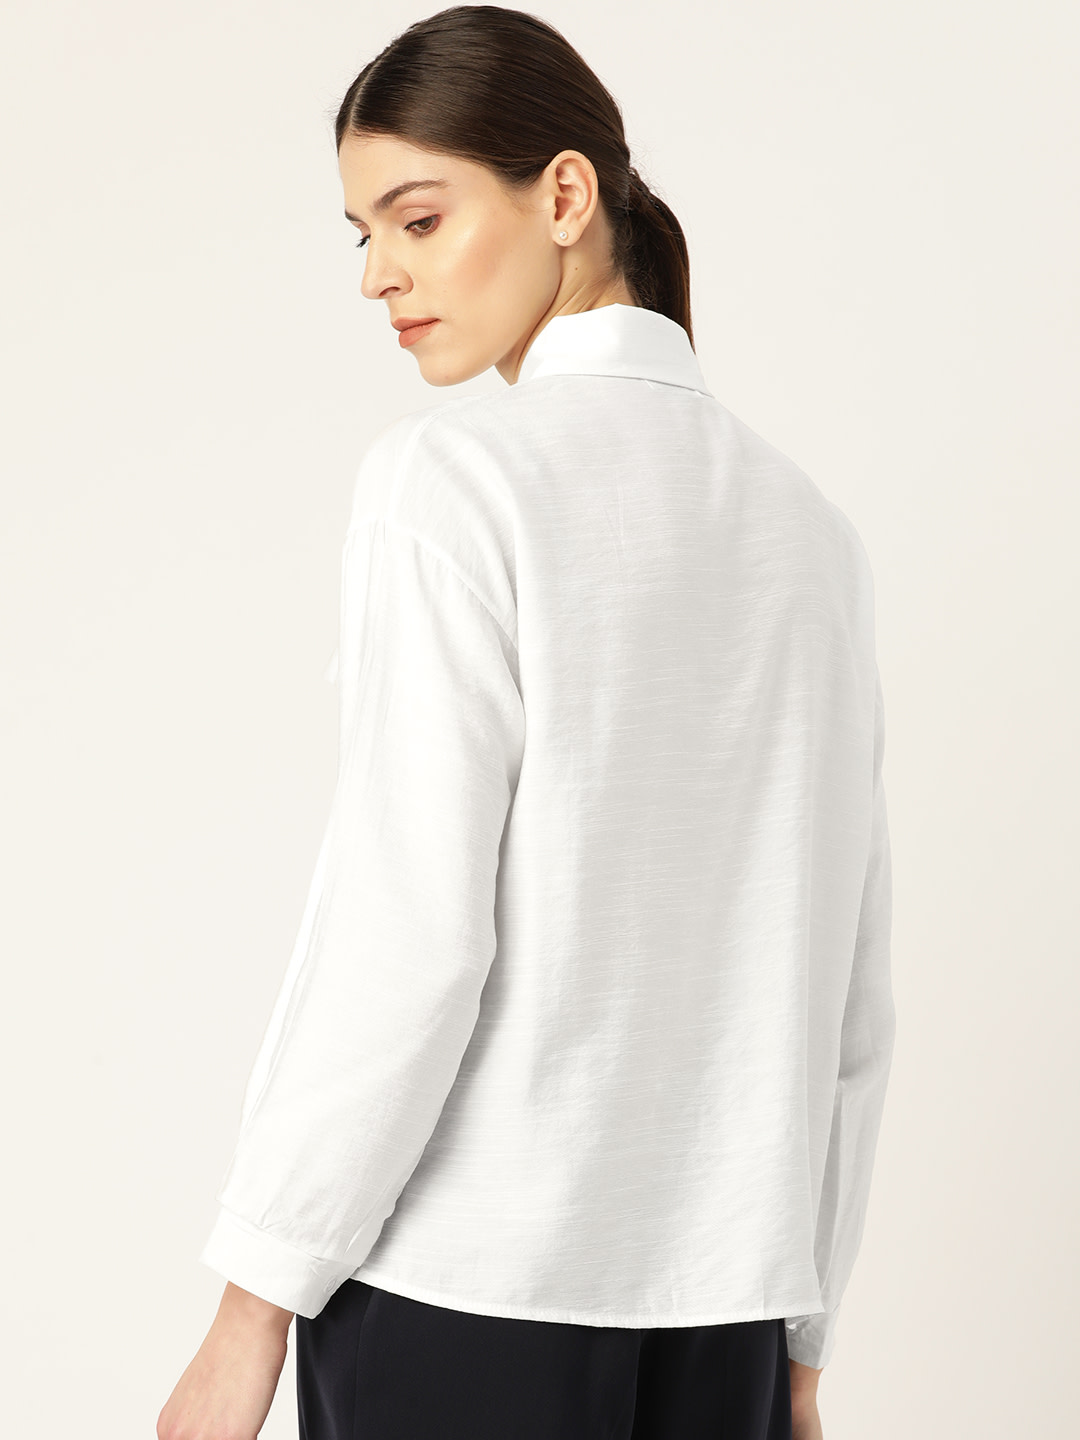 Tops-One Of A Kind White Shirt3